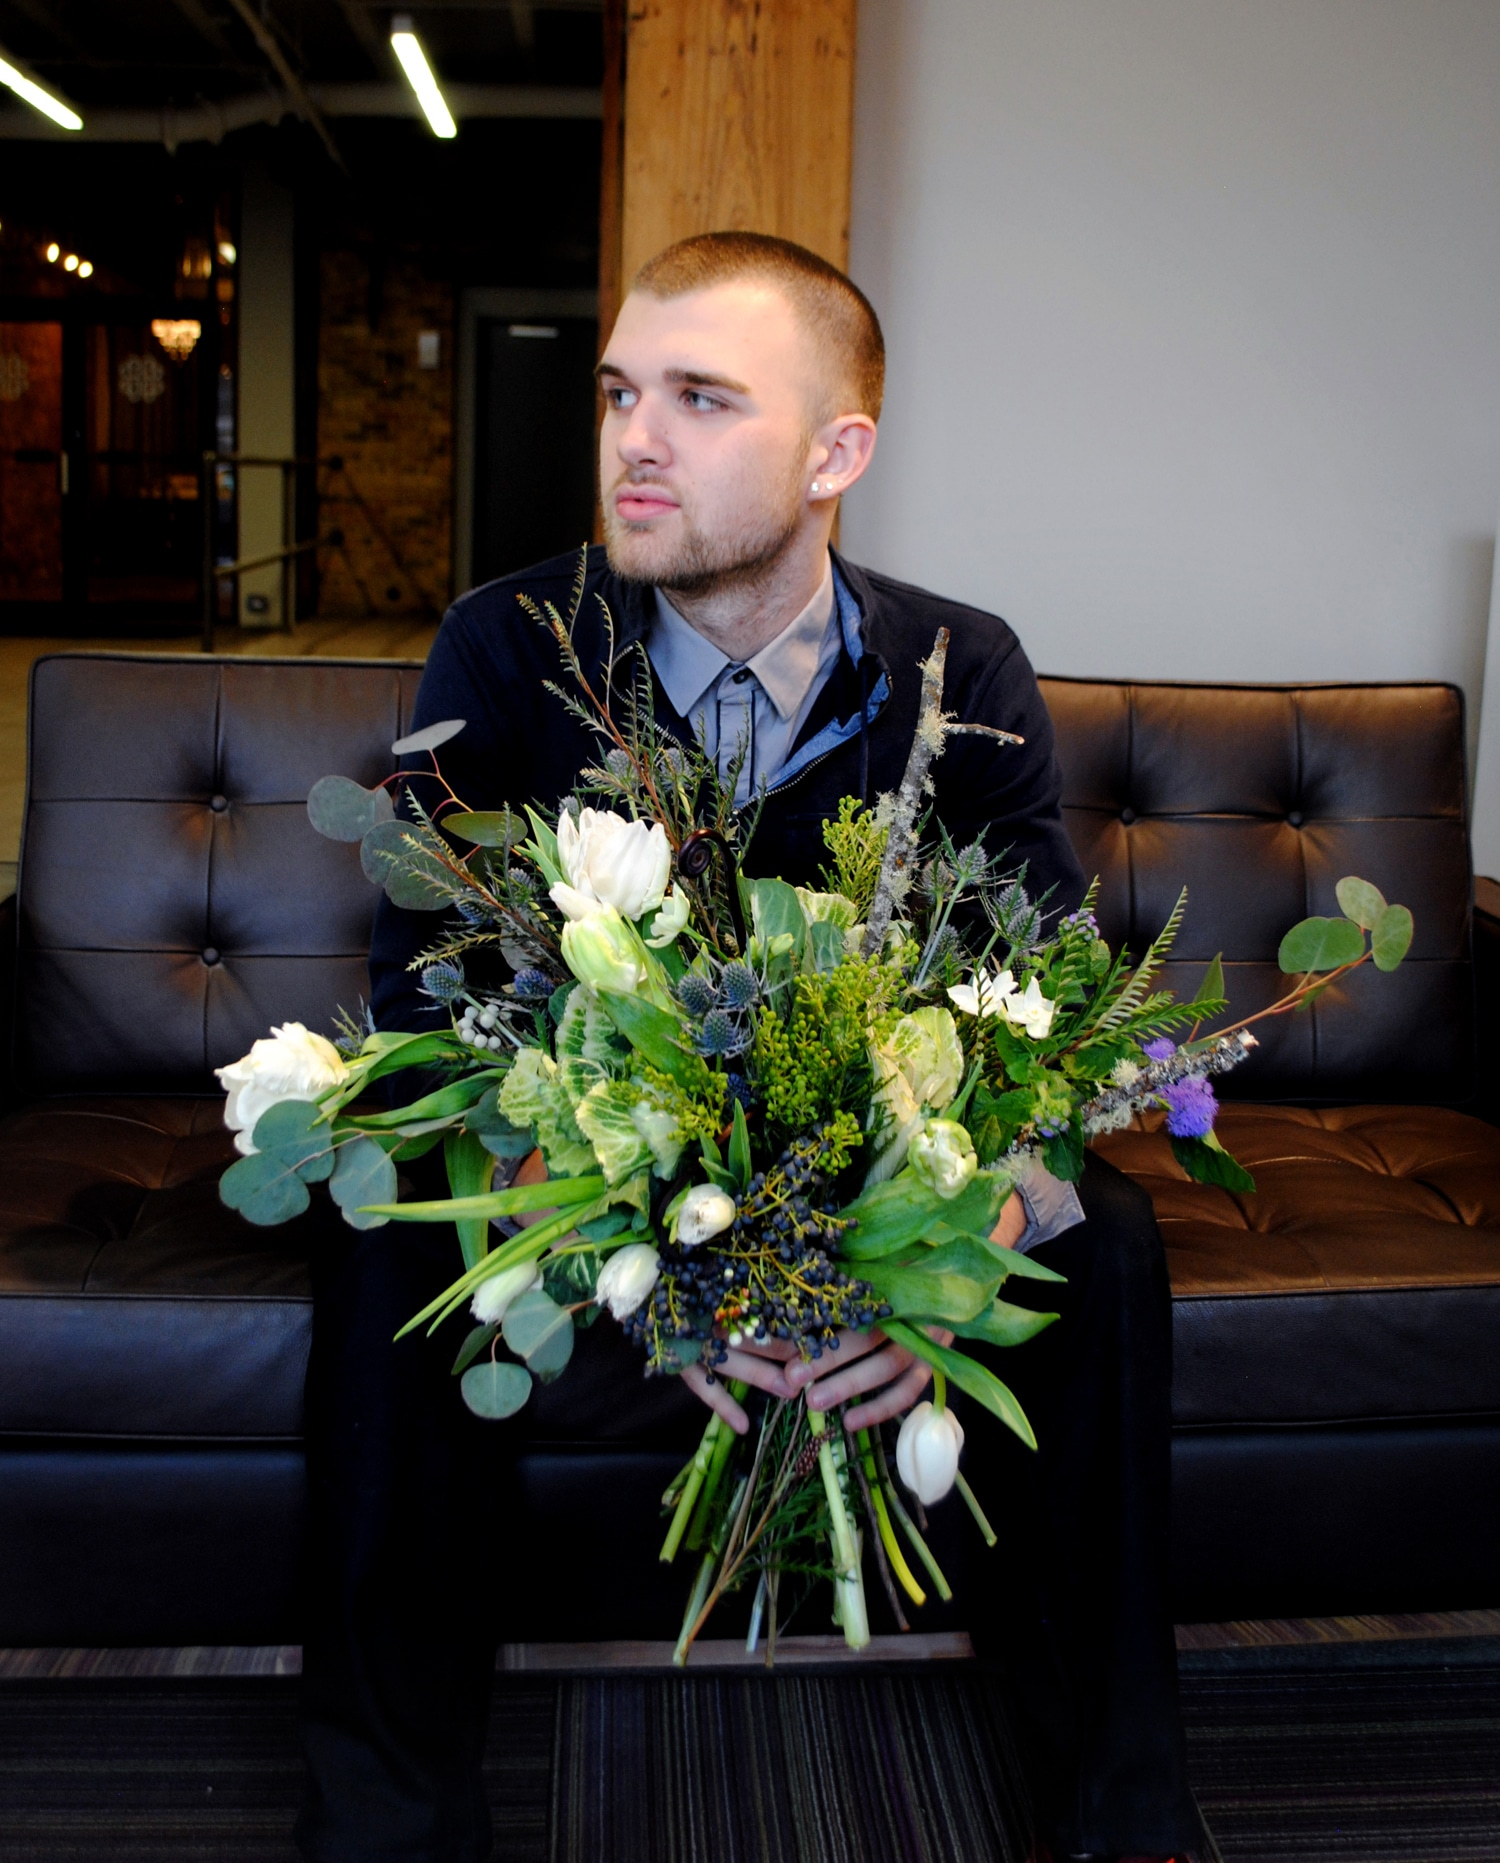 Hayden Regina, a floral designer at Flowers for Dreams